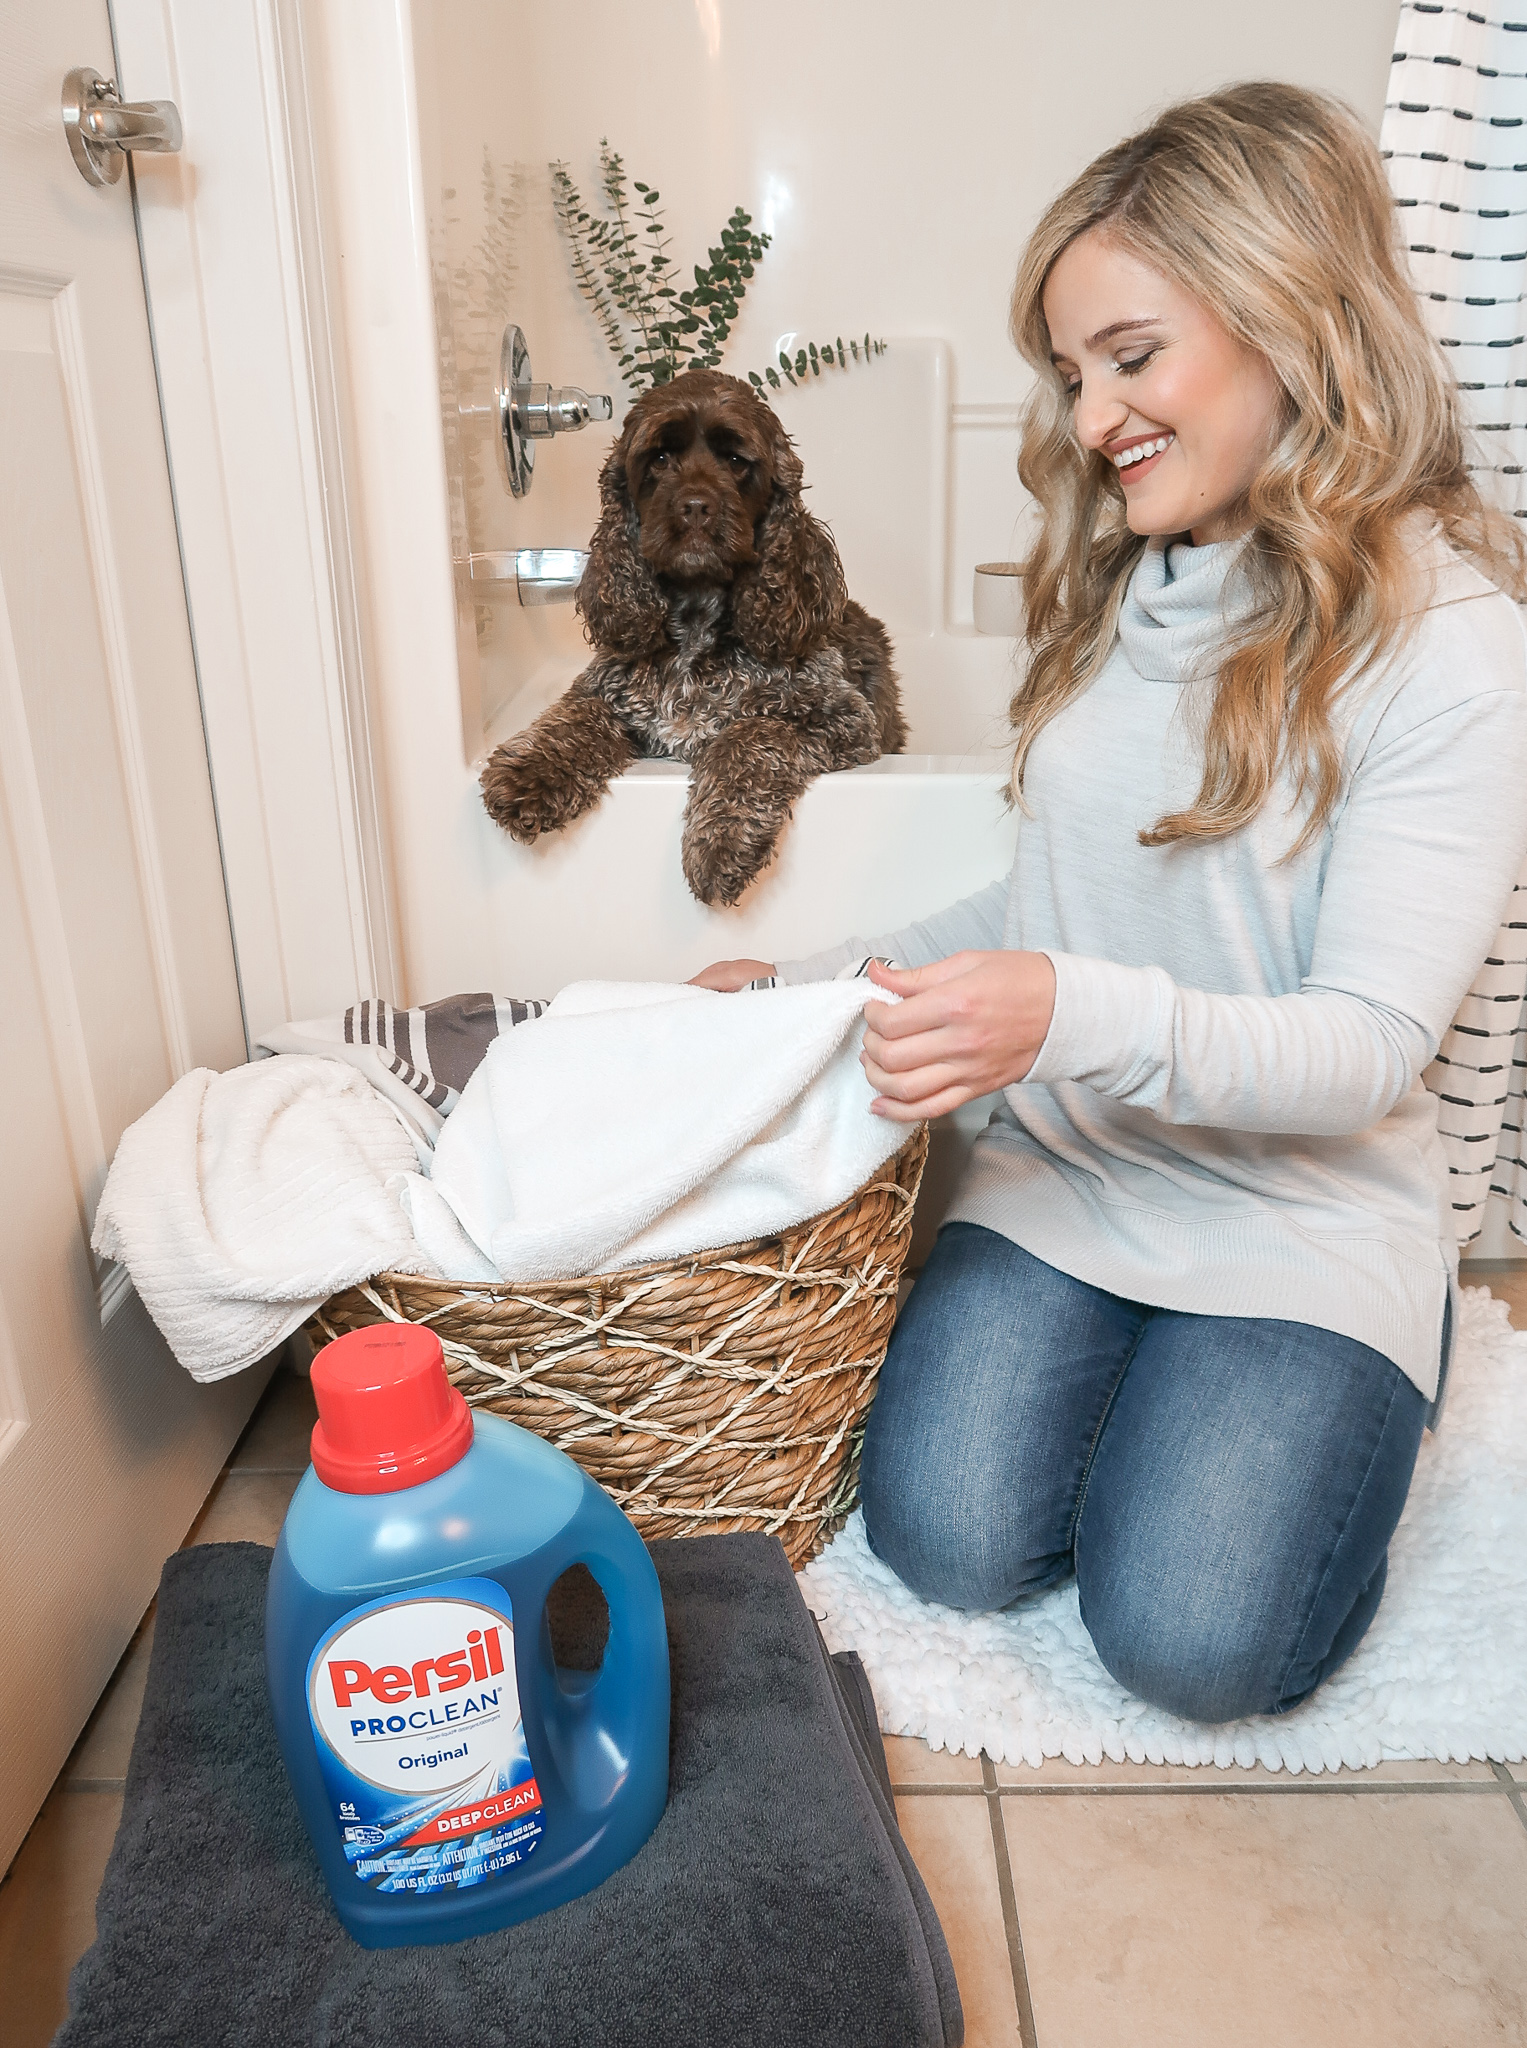 A-Pet-parents-guide-to-tough-stains-persil-laundry-detergent-1.jpg